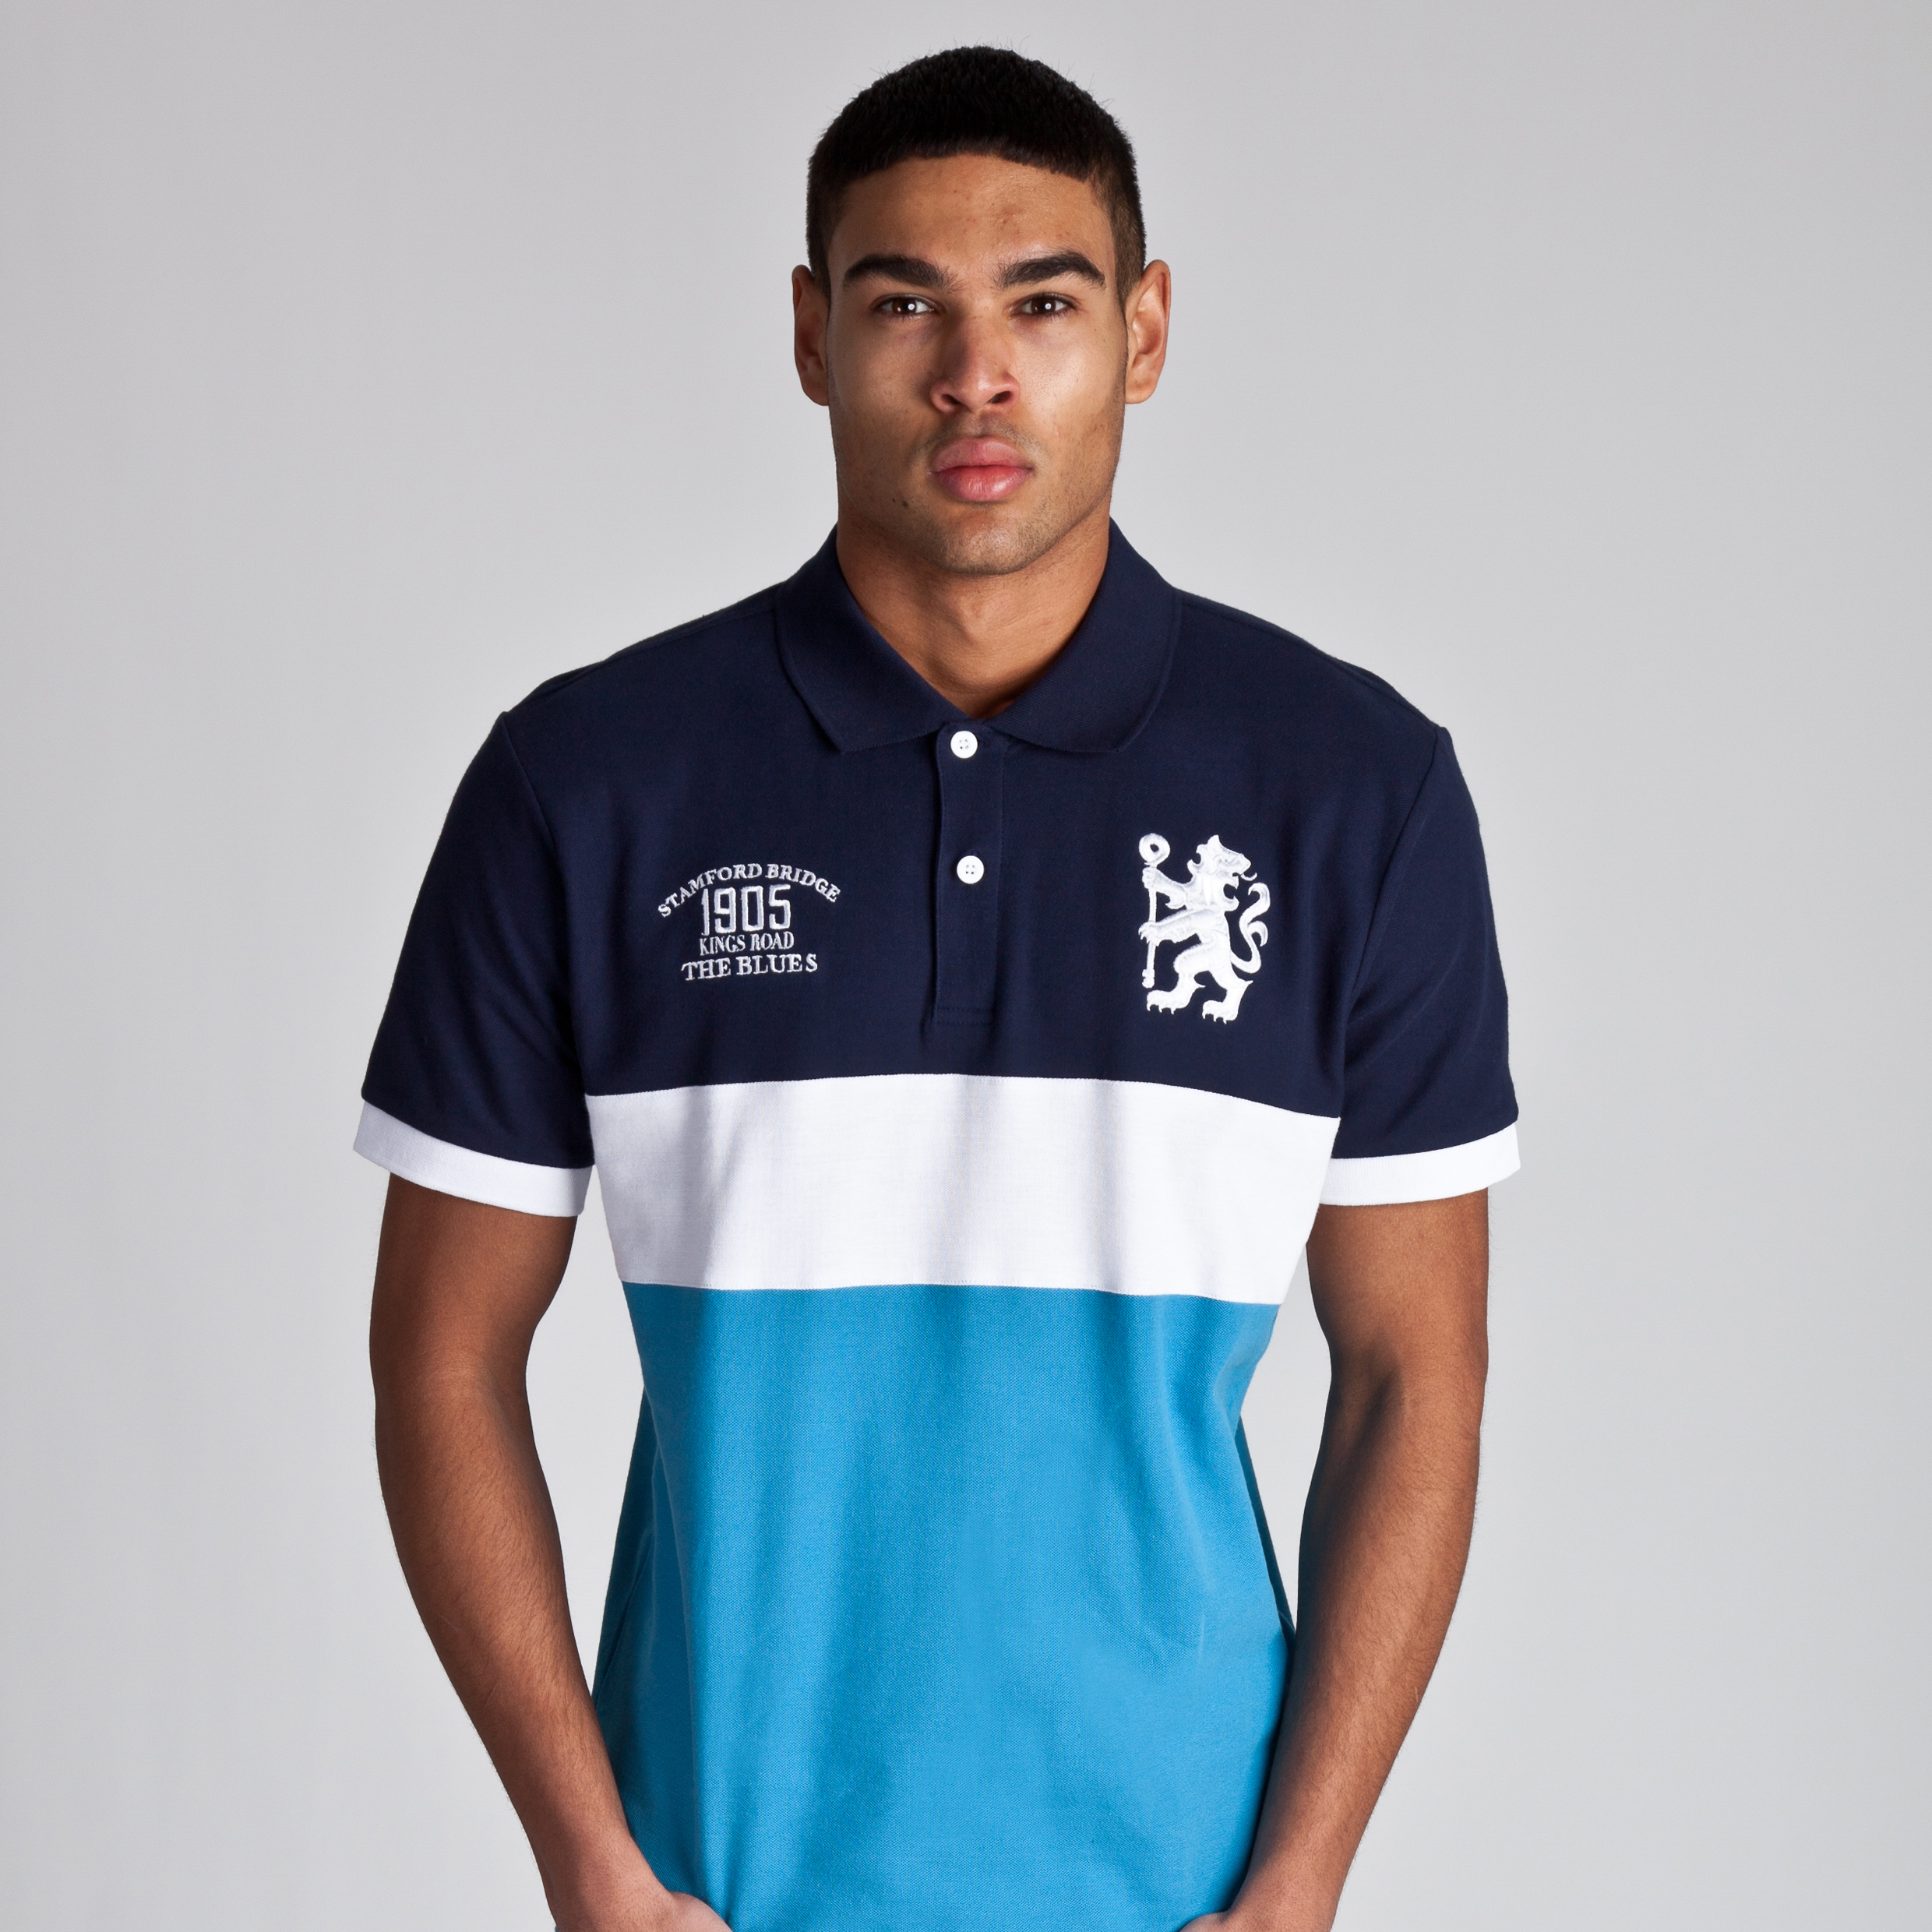 Chelsea Heritage Colour Block Polo - Navy/Surf Blue